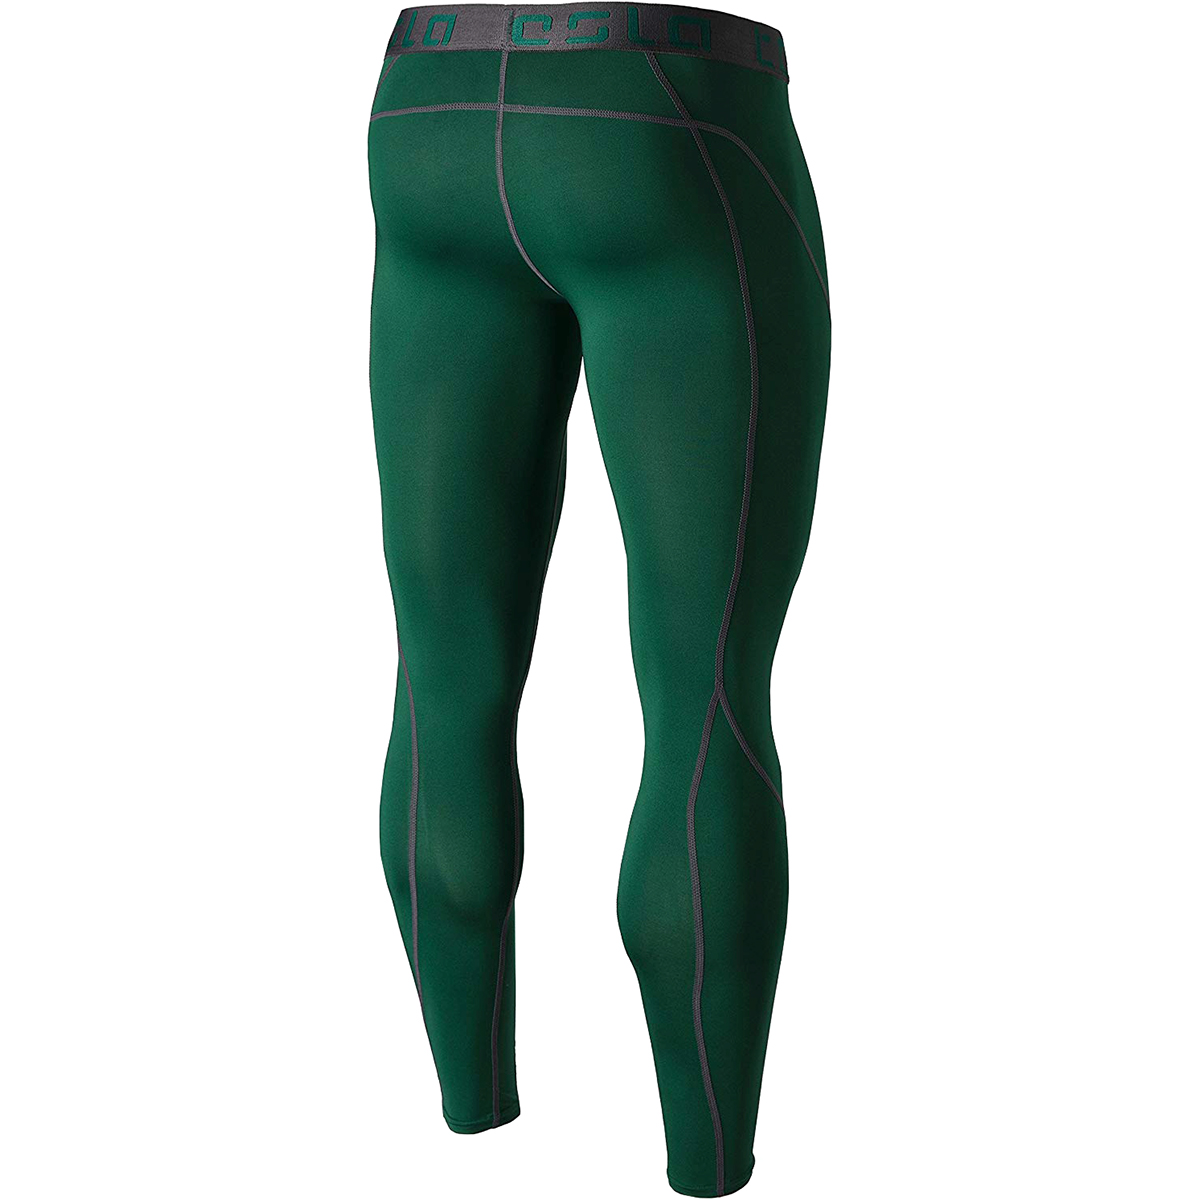 2d508c83babbd Tesla MUP19 Cool Dry Baselayer Compression Pants - Small - Green/Dark Gray